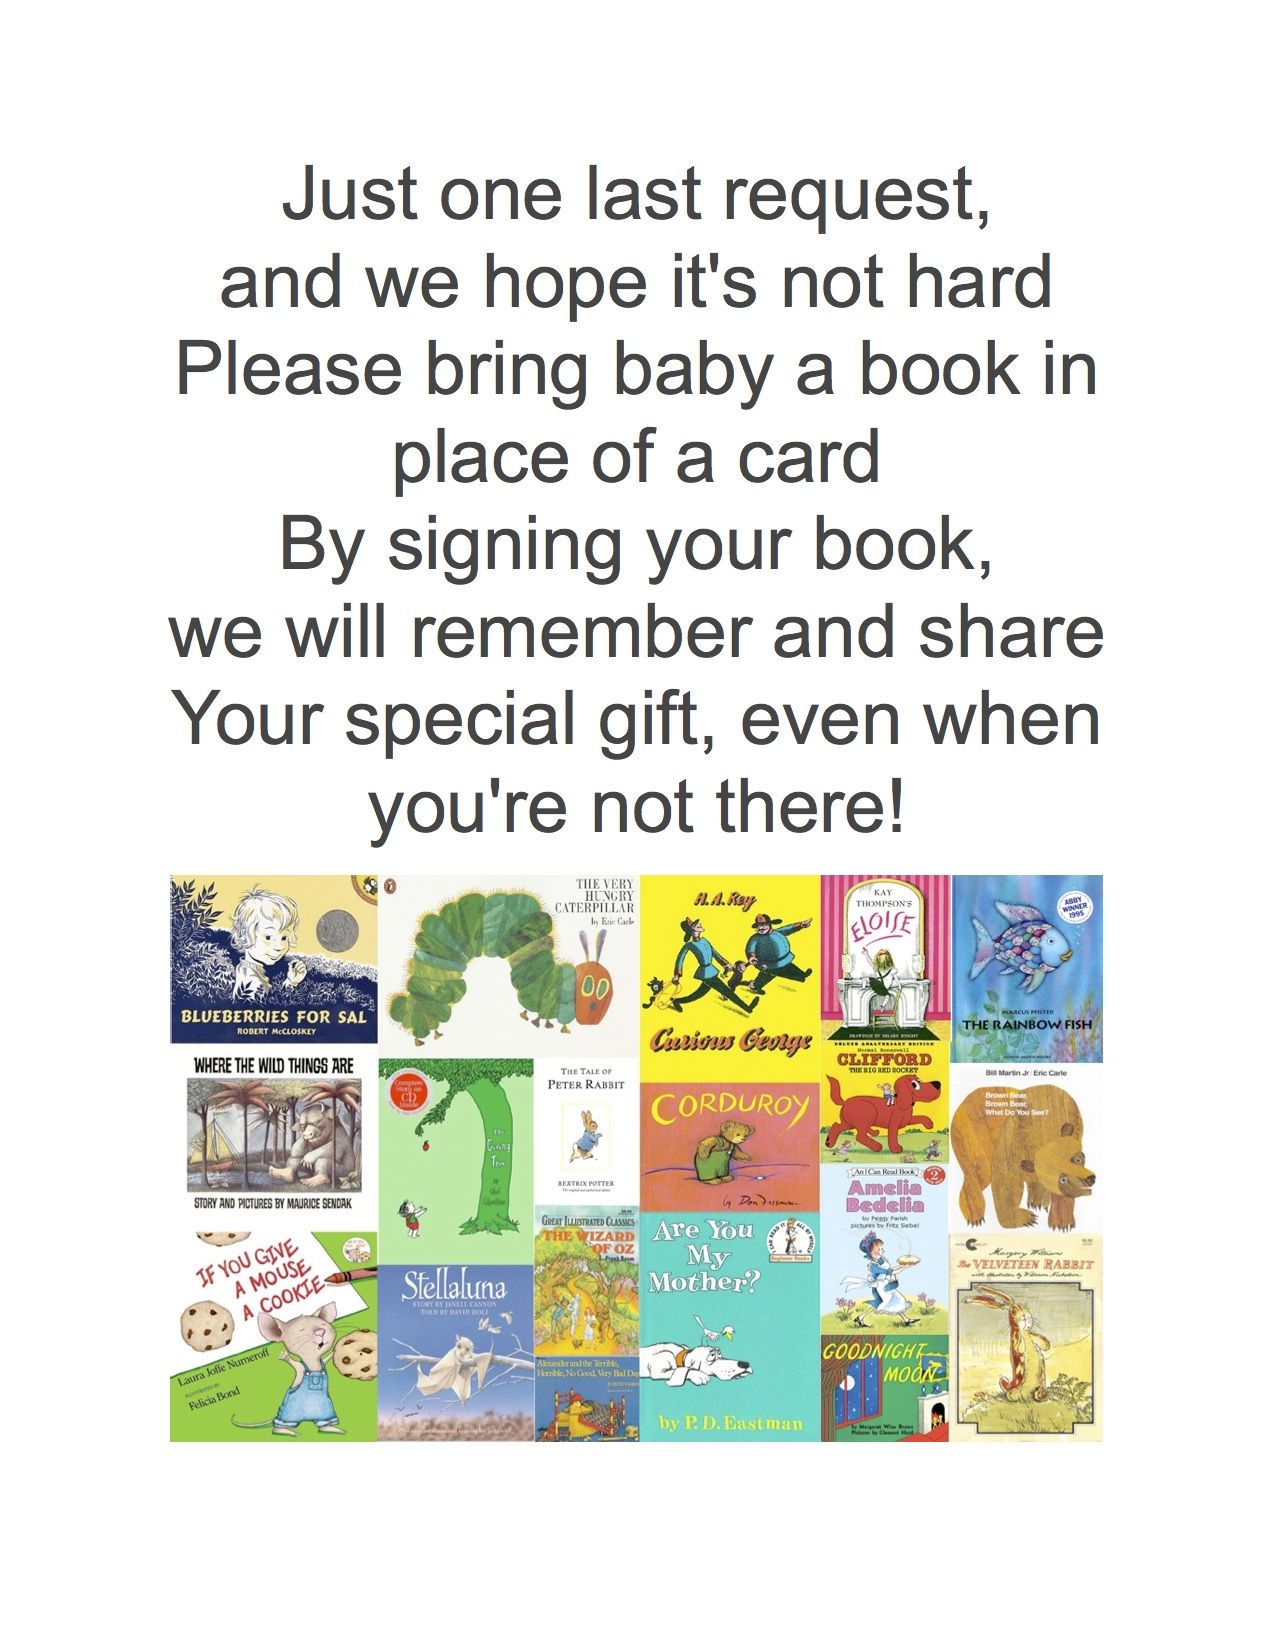 Bring a book instead of a card baby shower ideas baby